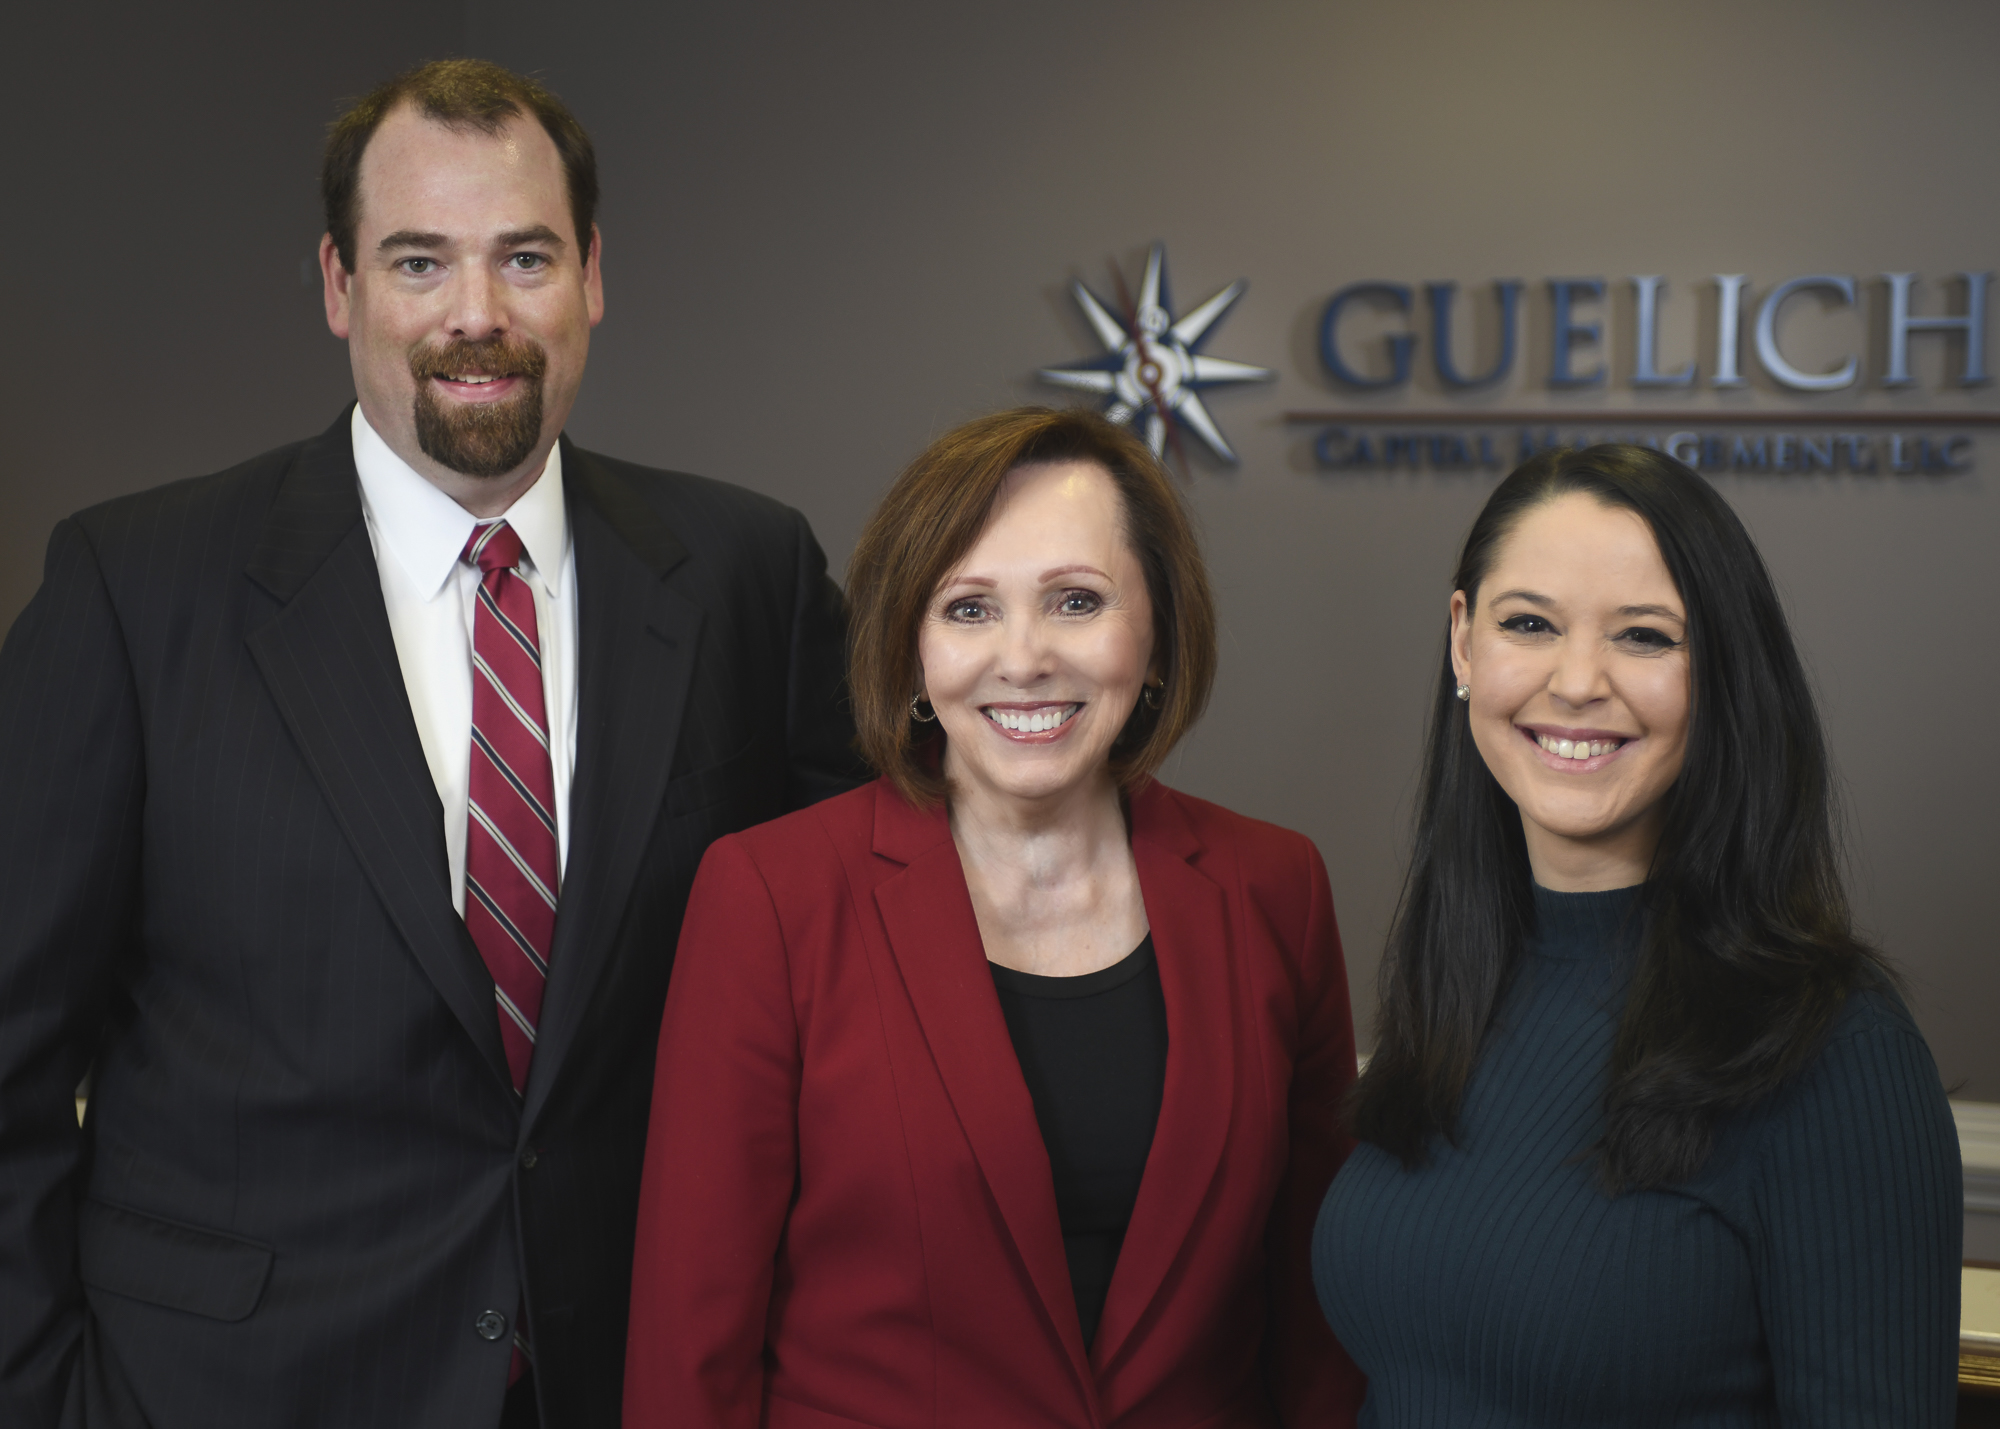 Team at Guelich Capital Management Roanoke, VA Guelich Capital Management